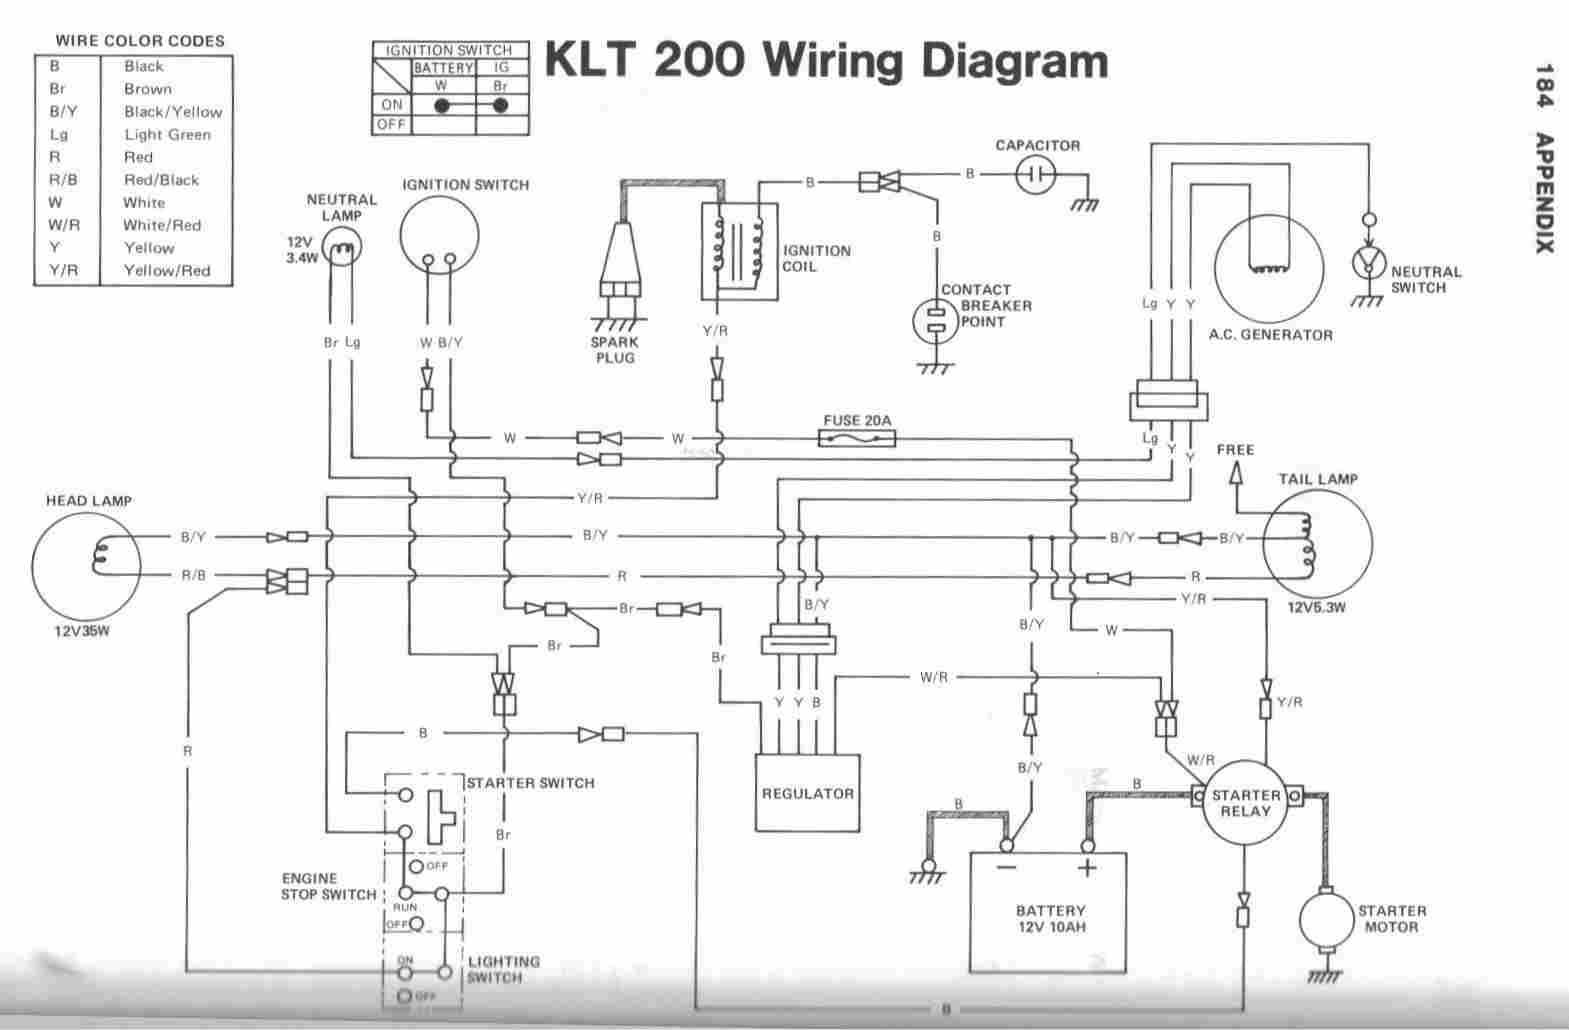 2869034594ce054a636782e5c44b61b4 wiring diagrams \u2022 woorishop co  at sewacar.co